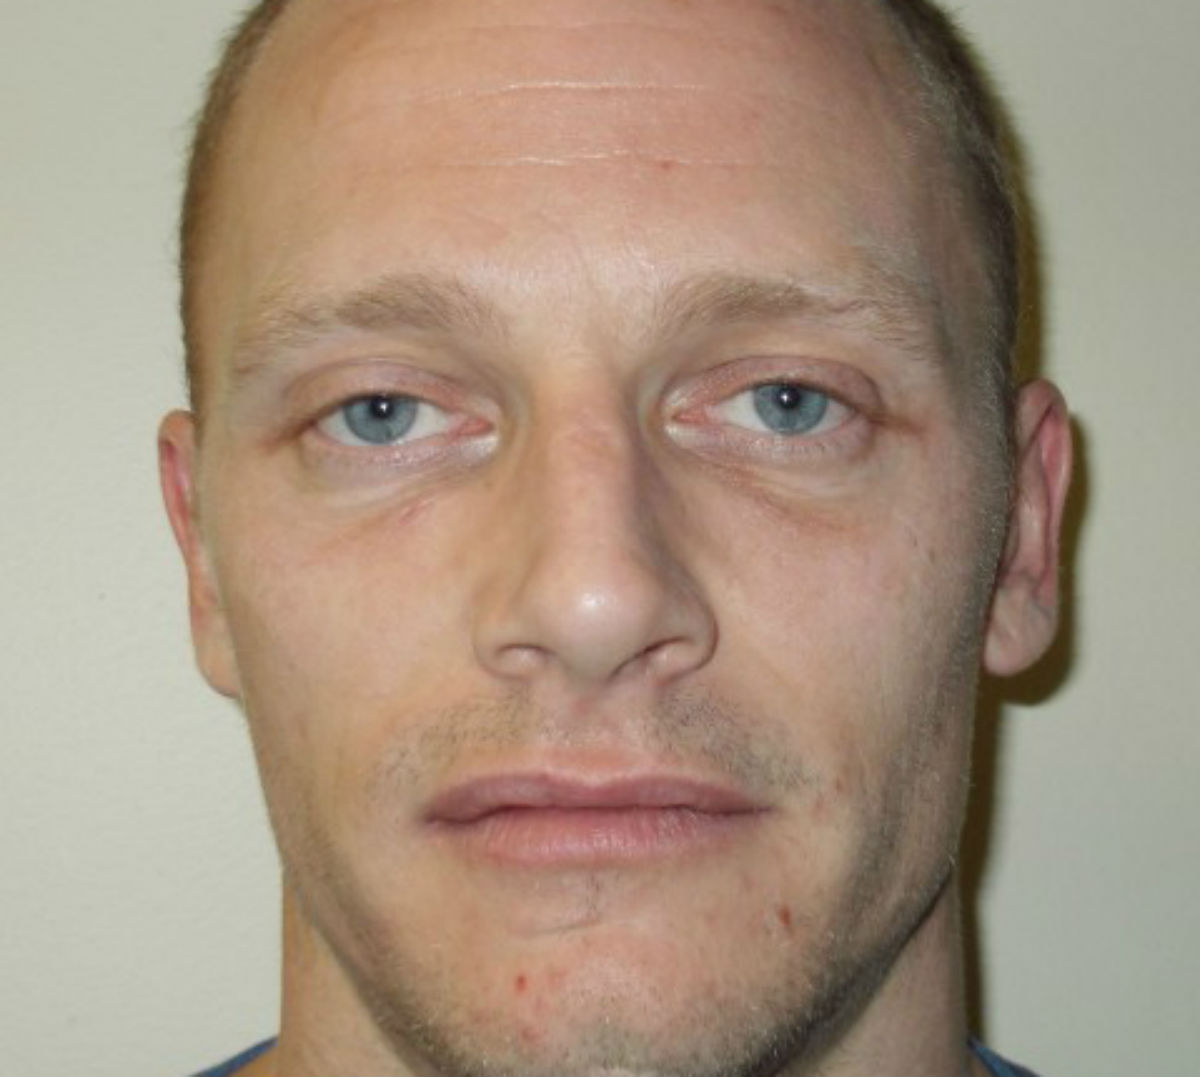 Man given life sentence for armed robbery near Sherborne